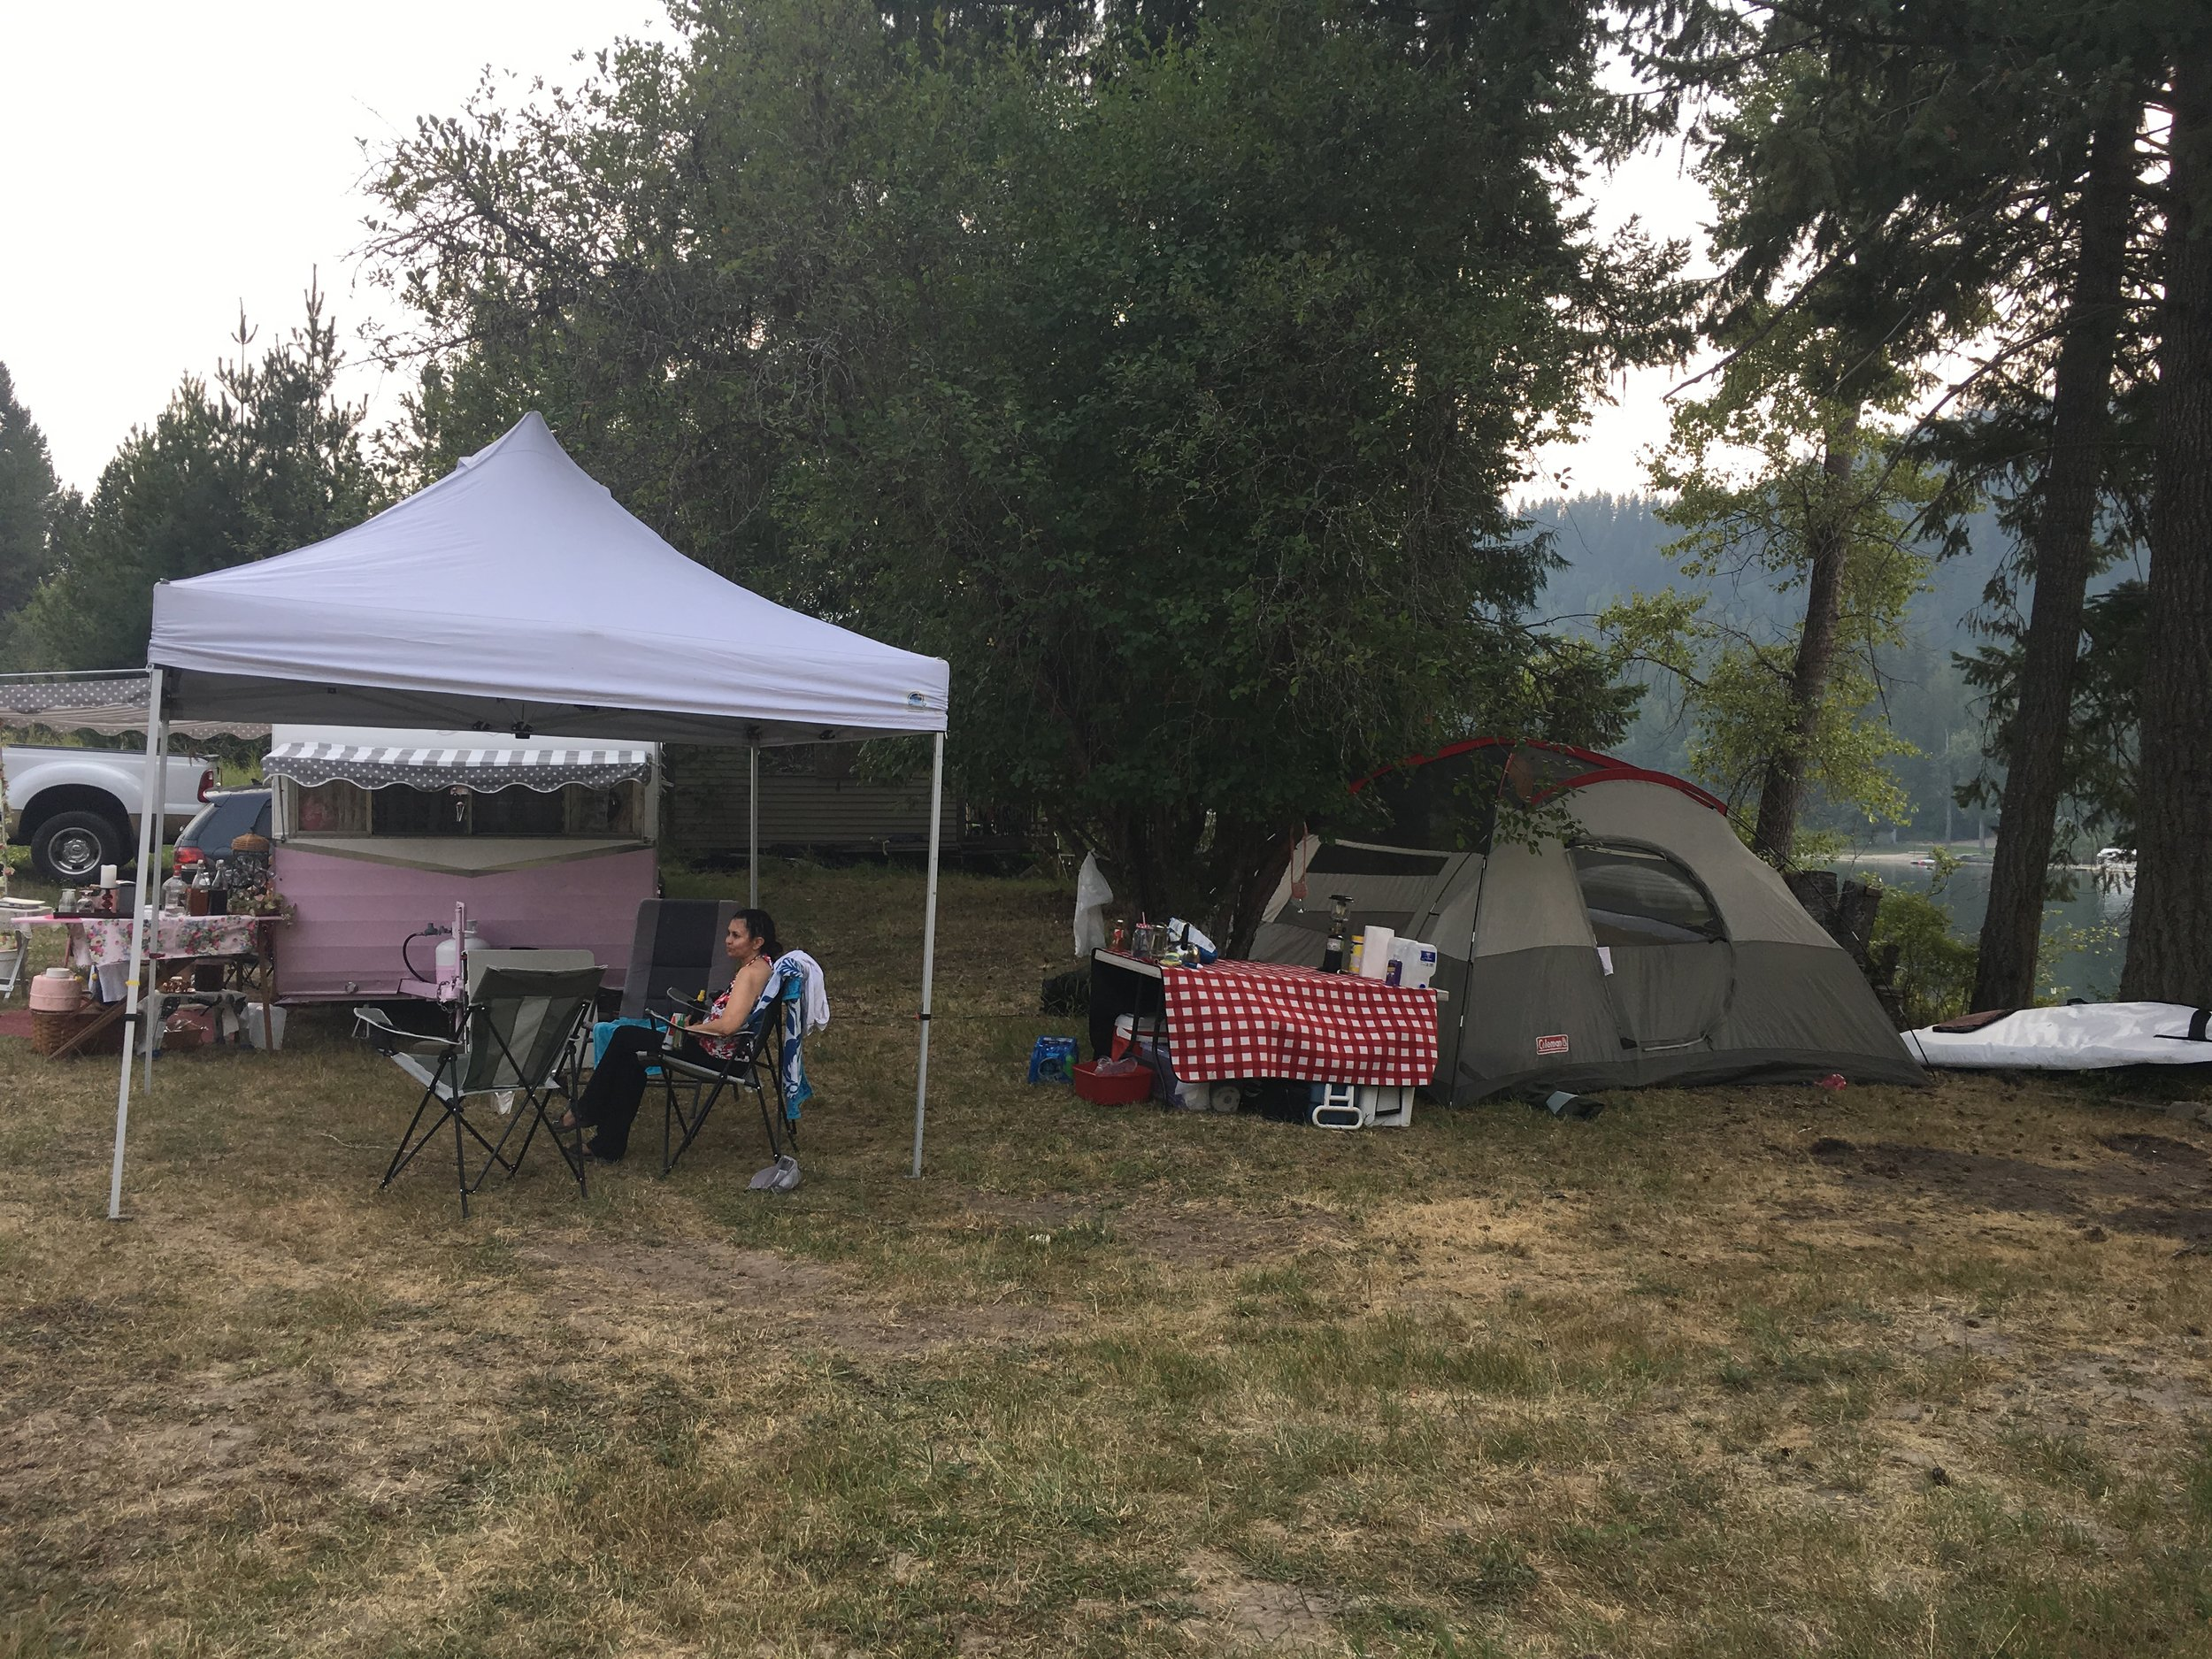 My friend Cindy hosted an all girls camping weekend. Since we sold the camper, I had to kick it old school with a tent. My friend Patrizia shared it with me. It was her first time camping. We had so many laughs!